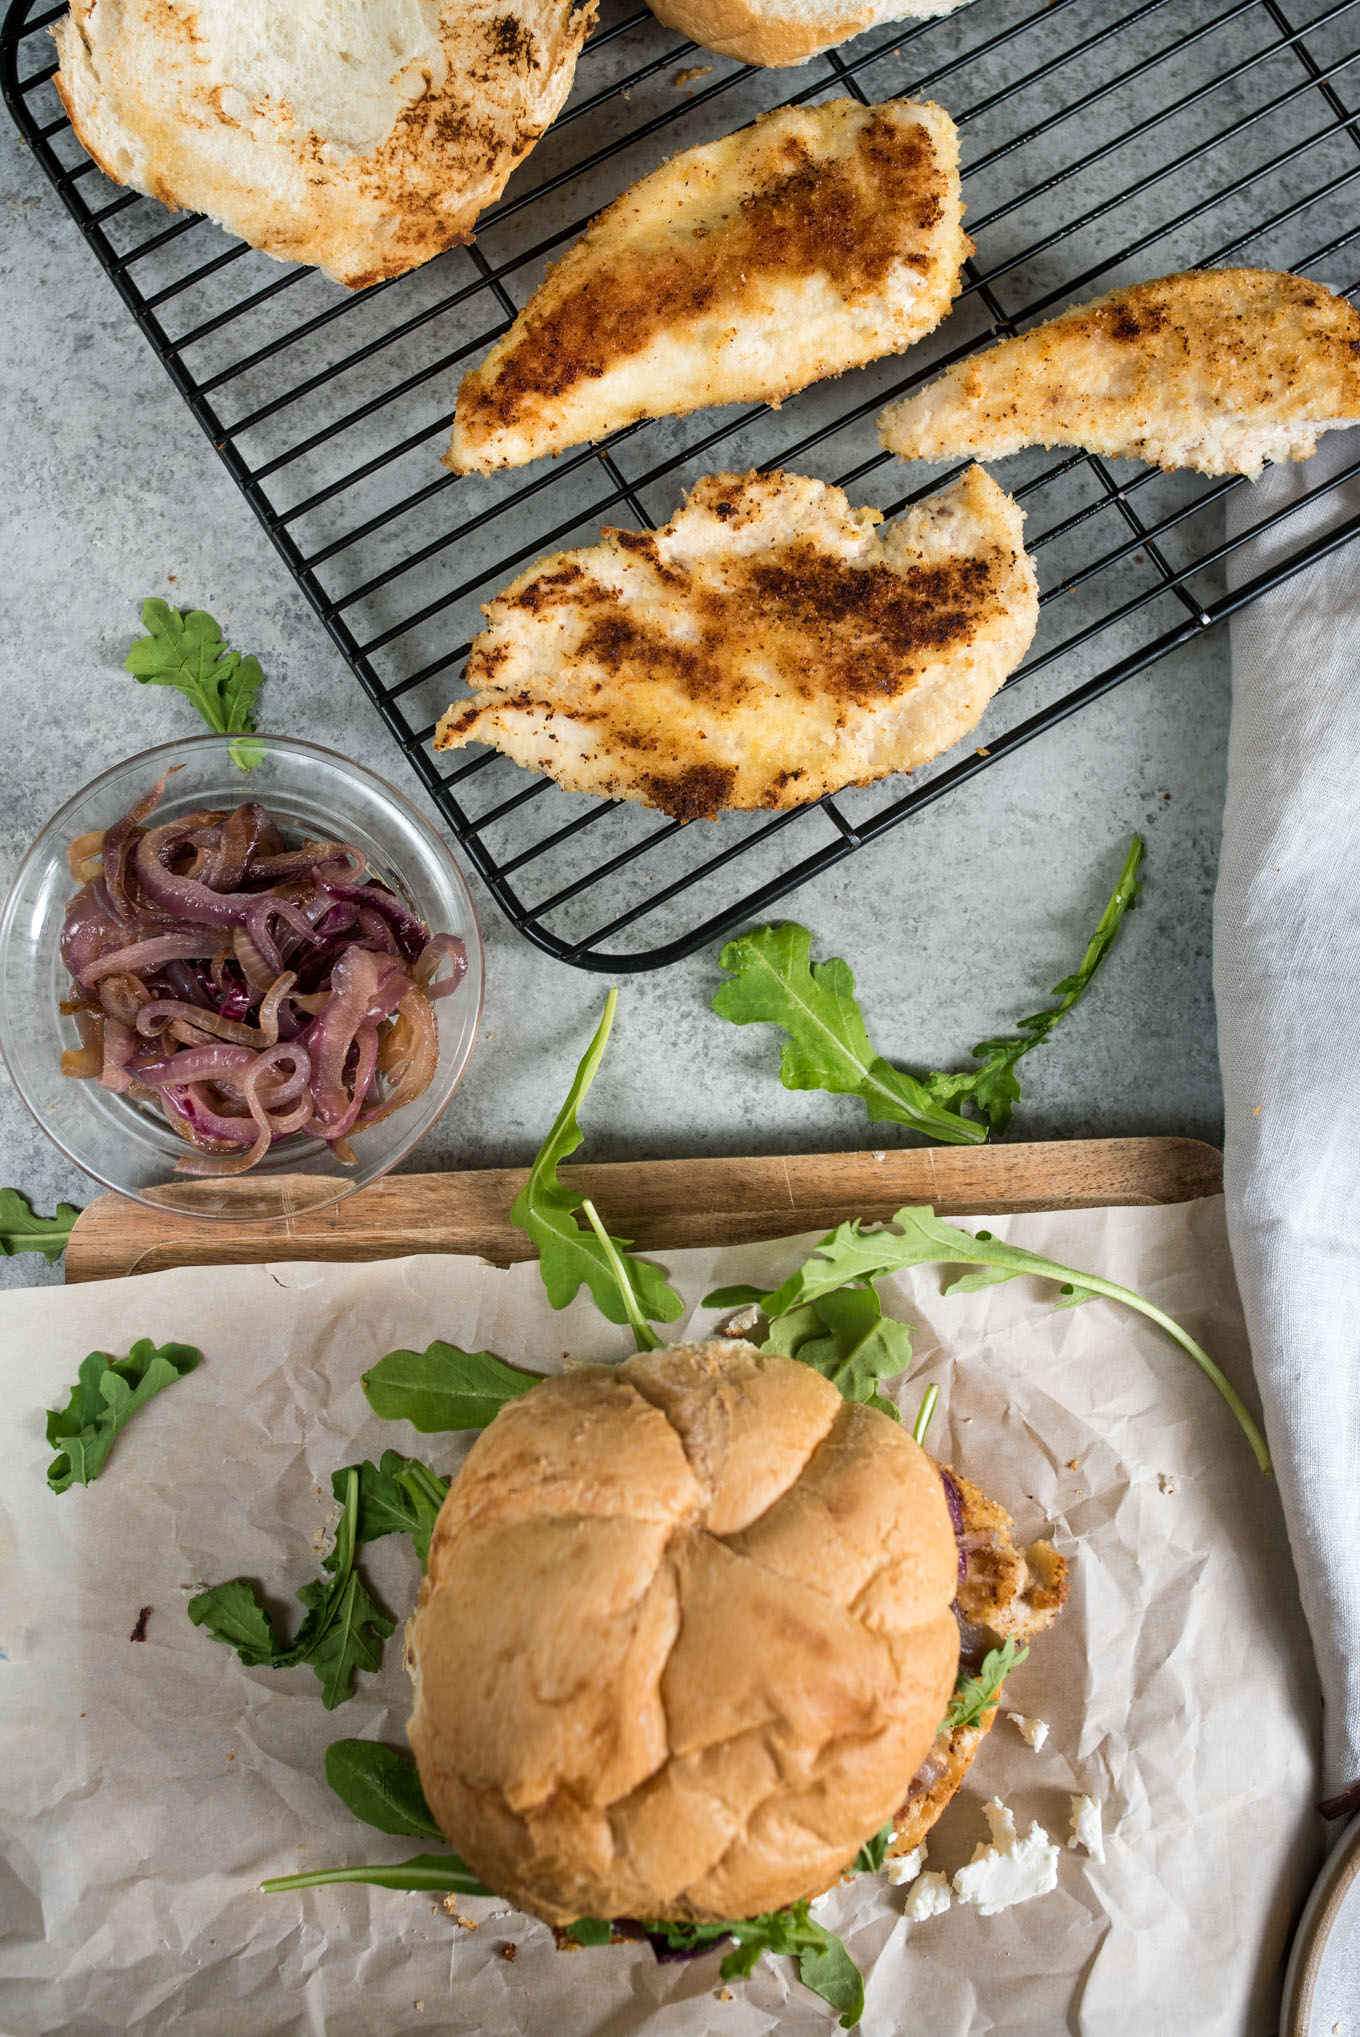 Cooling rack with chicken